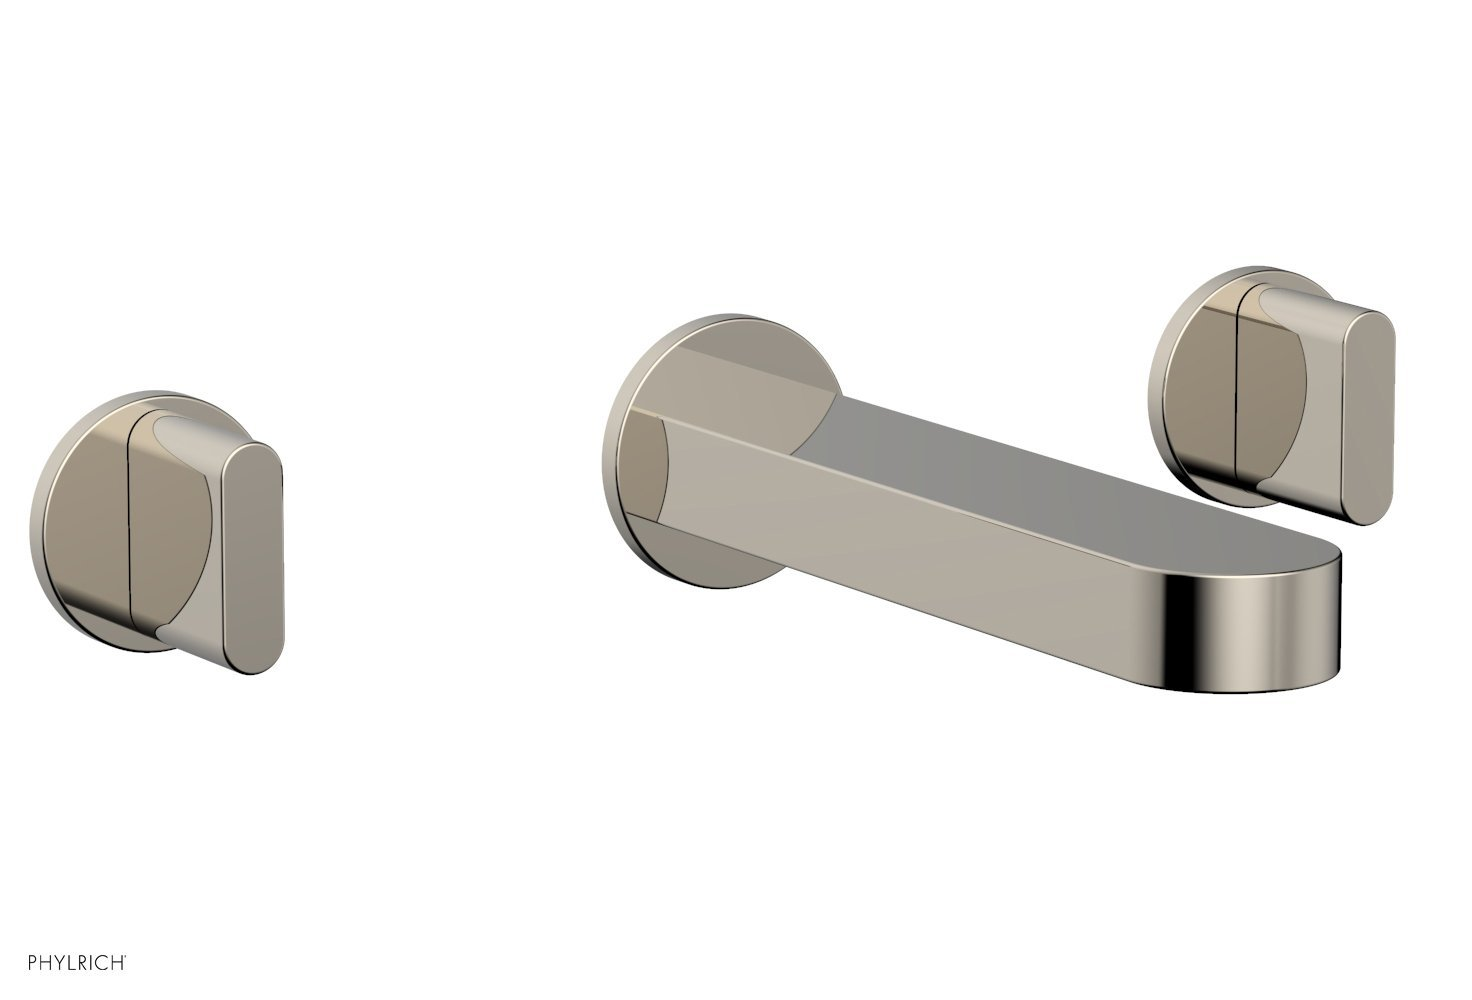 Phylrich 183-56-014 ROND Wall Tub Set - Blade Handles - Polished Nickel